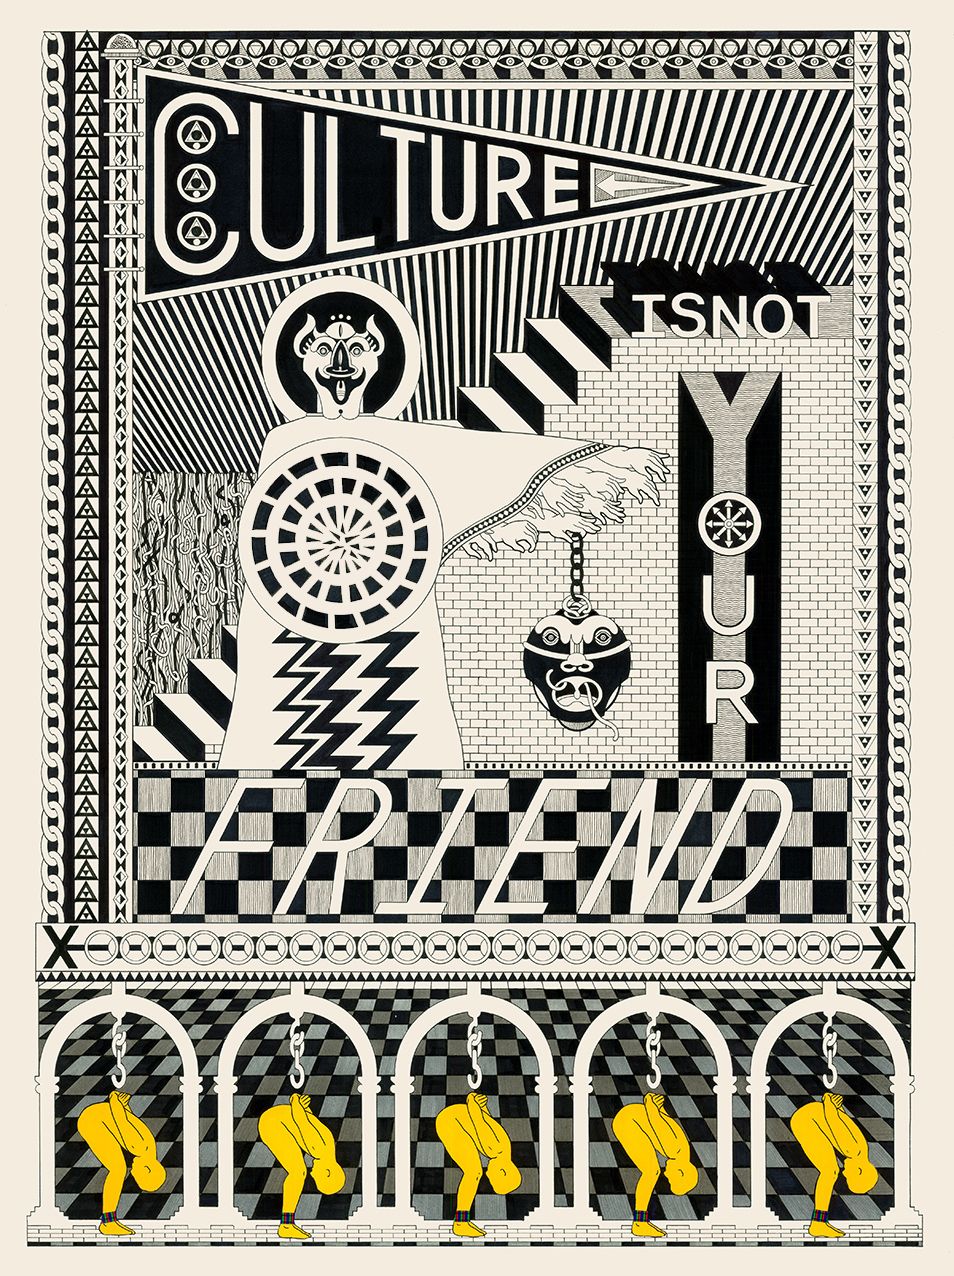 Culture Is Not Your Friend, 2014